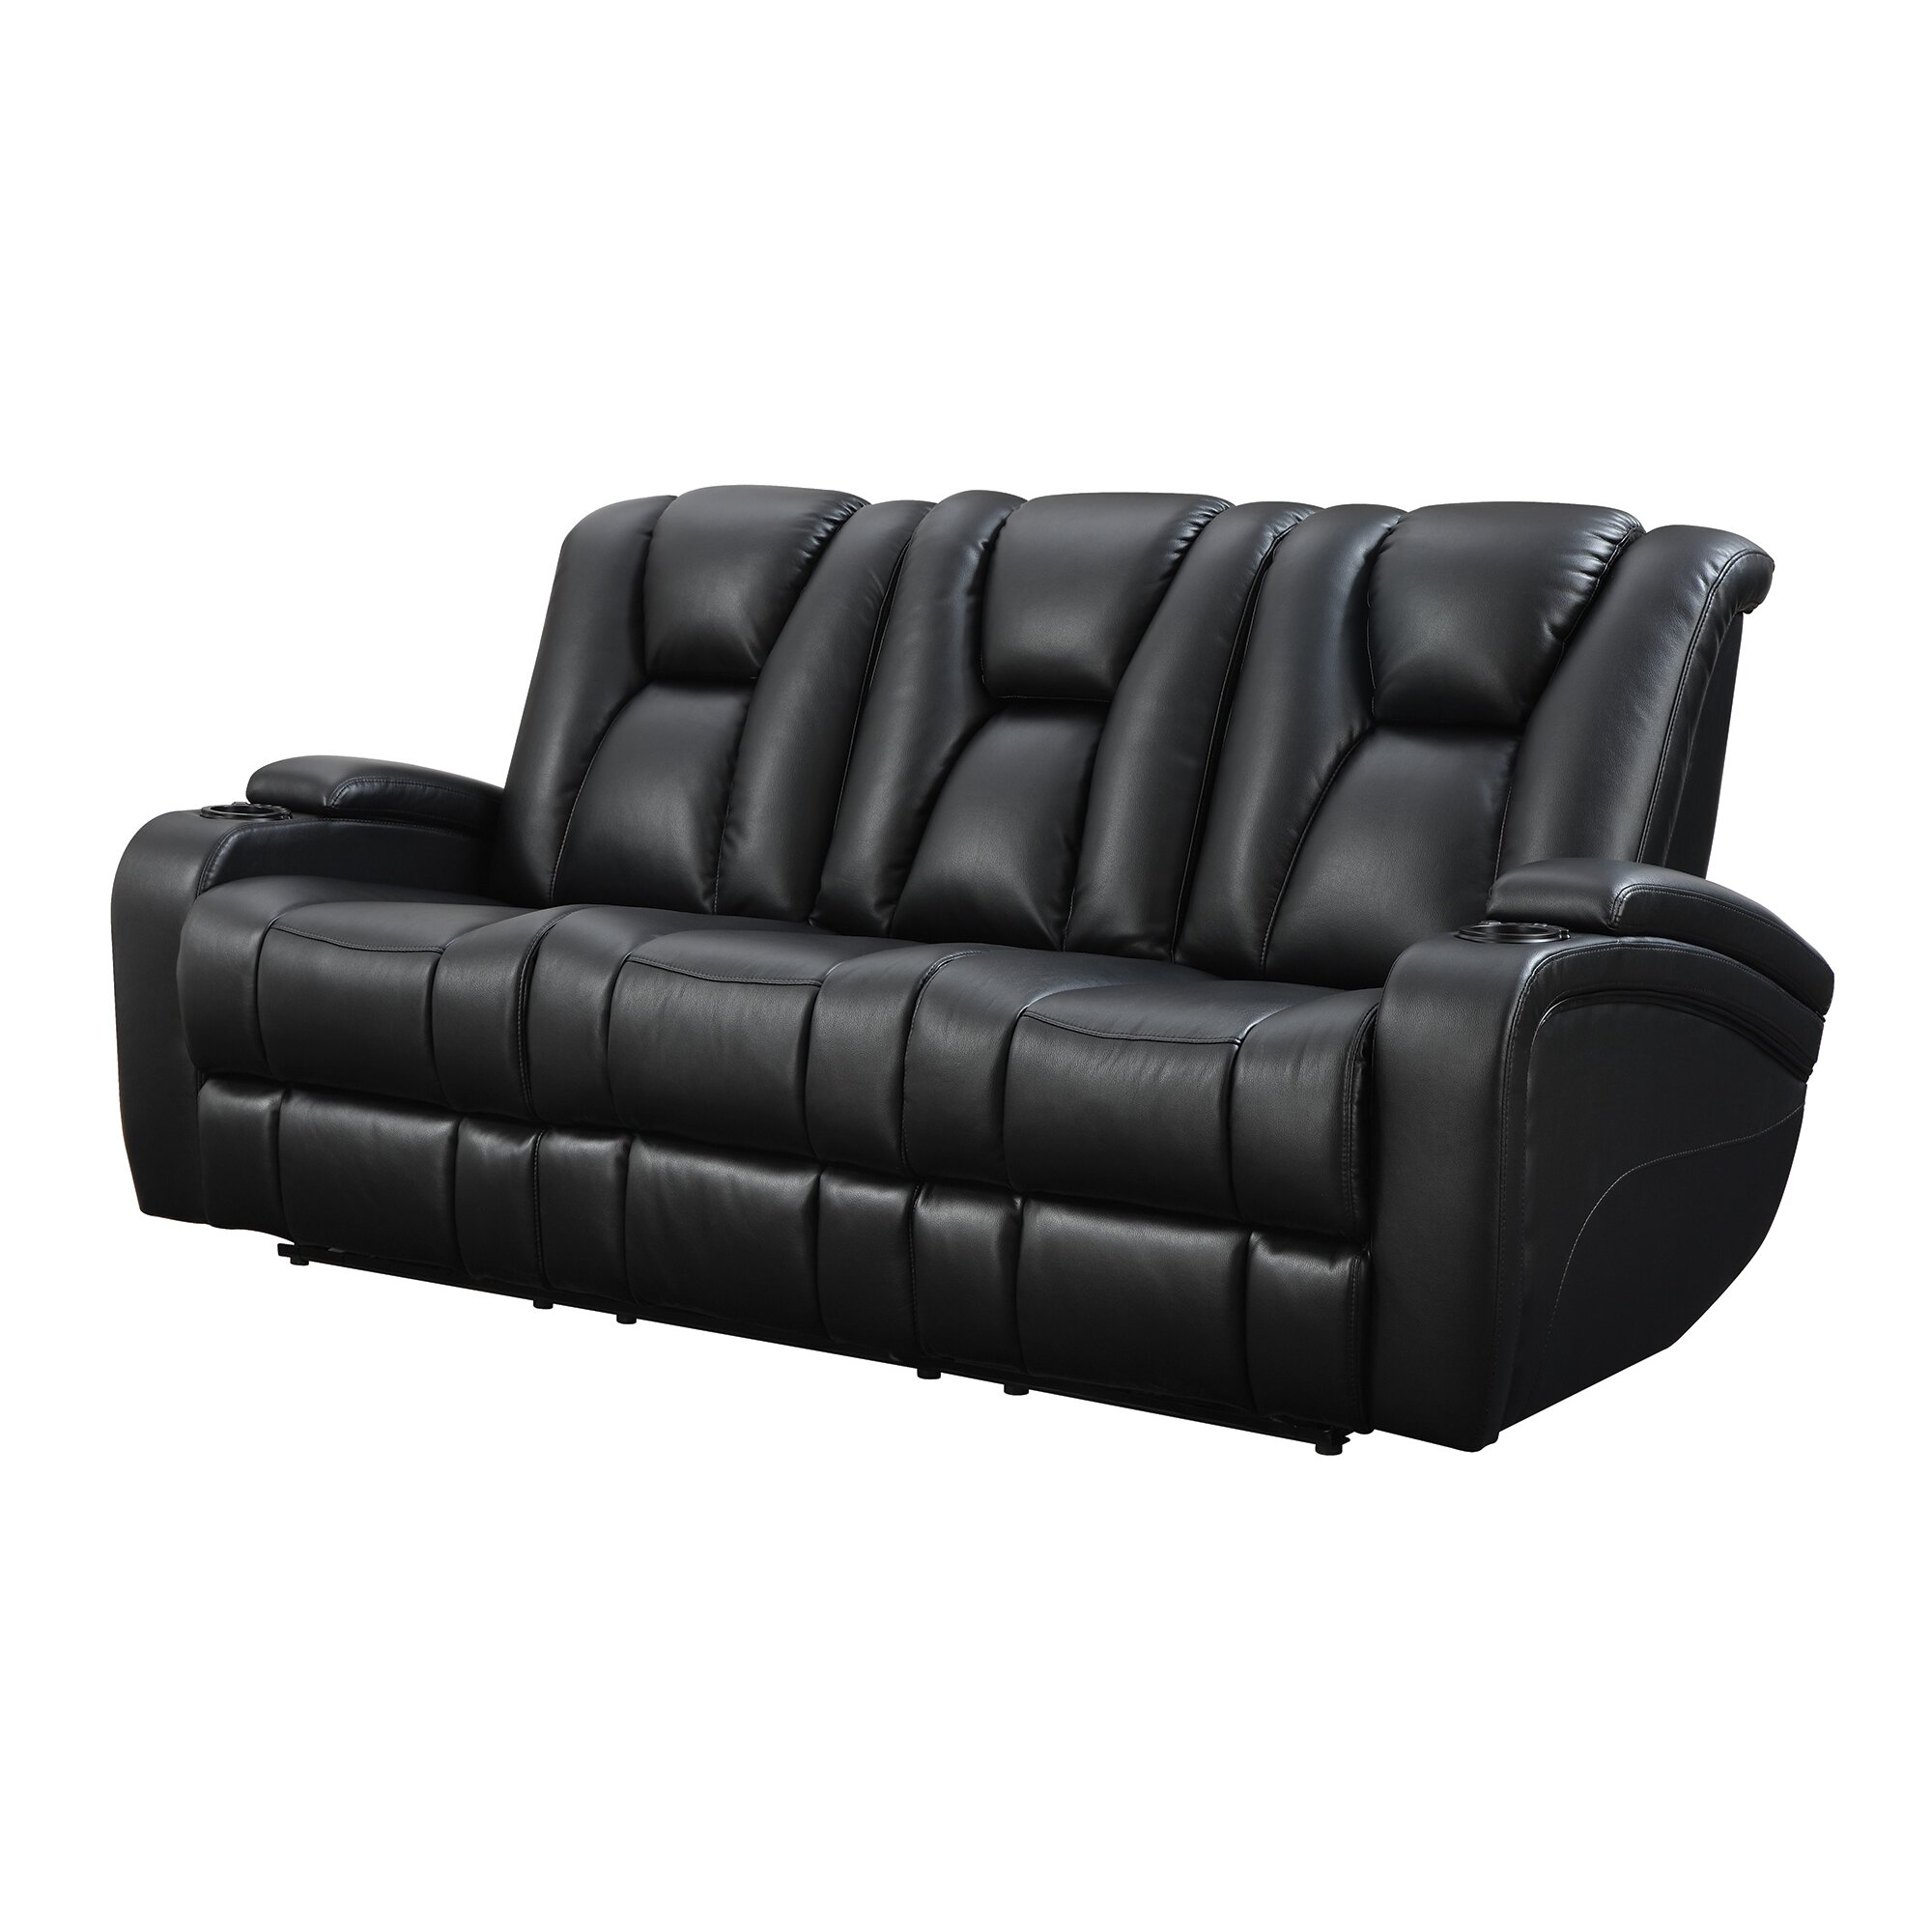 wildon home delange power leather reclining sofa. Black Bedroom Furniture Sets. Home Design Ideas